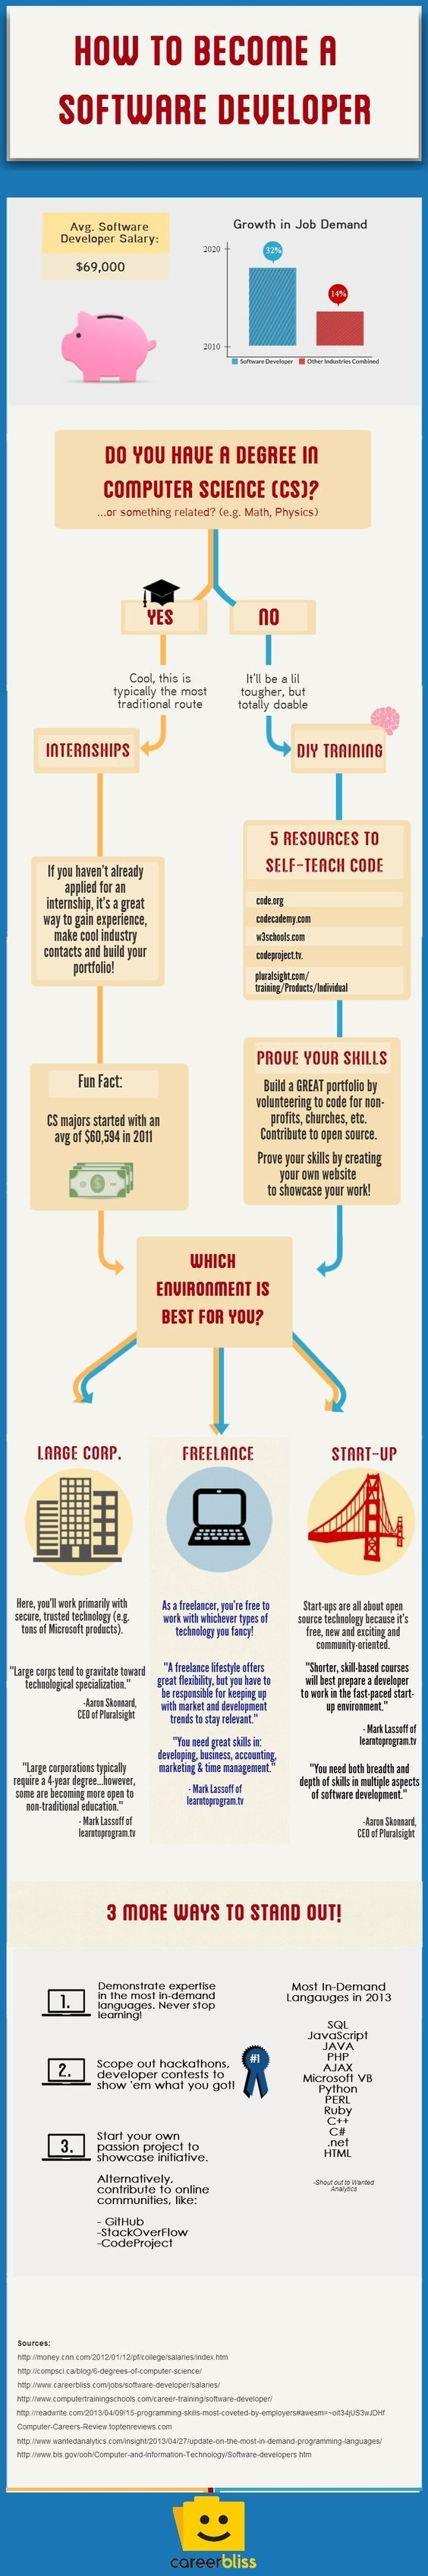 How To Become A Software Developer Infographic Technology Softwaredevelopment Software Development Computer Science Computer Programming